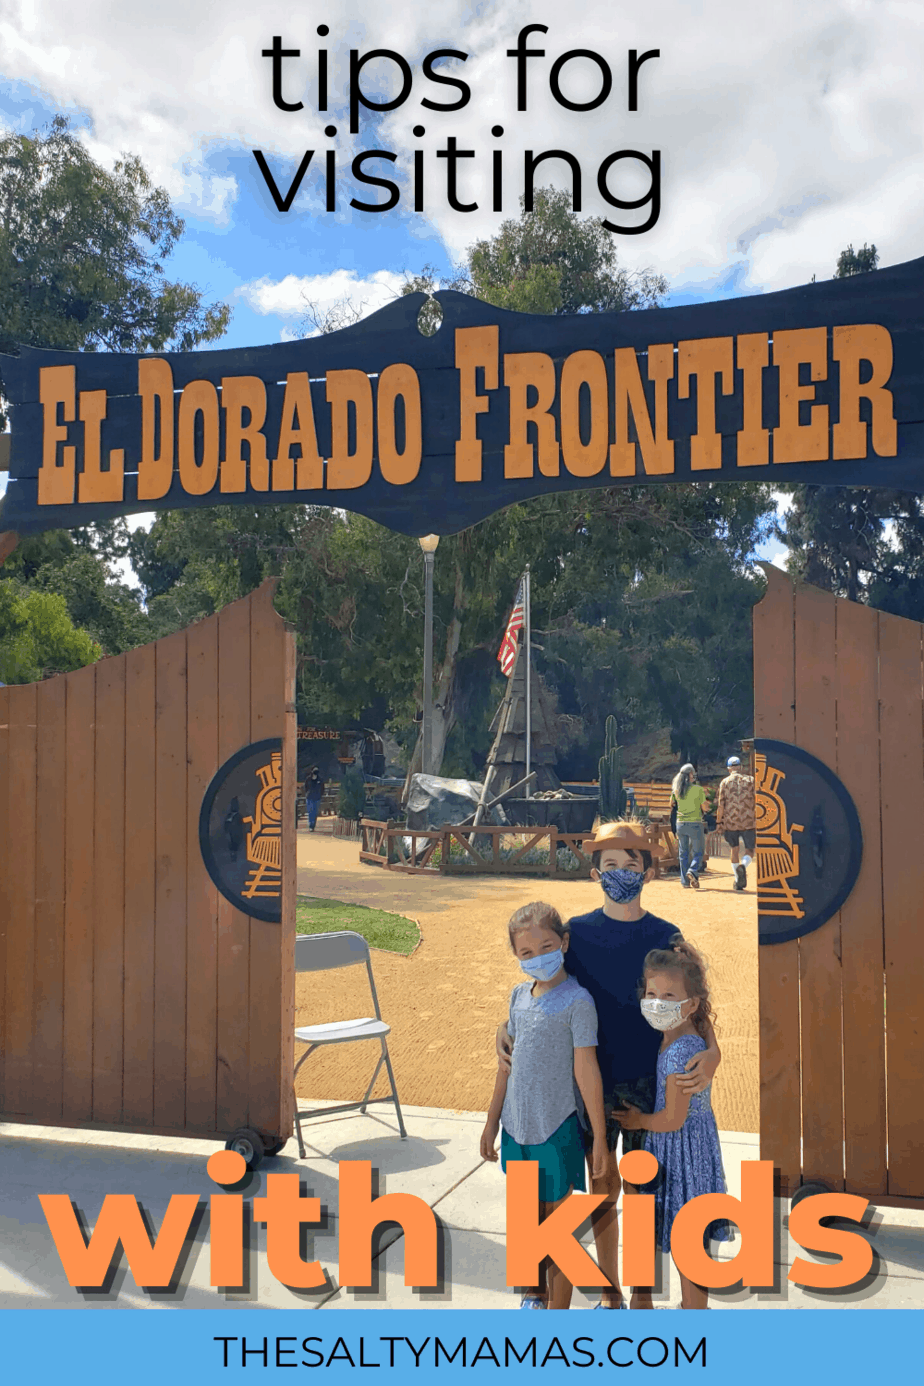 Tips for Visiting El Dorado Frontier with kids, by LongBeachKids.com